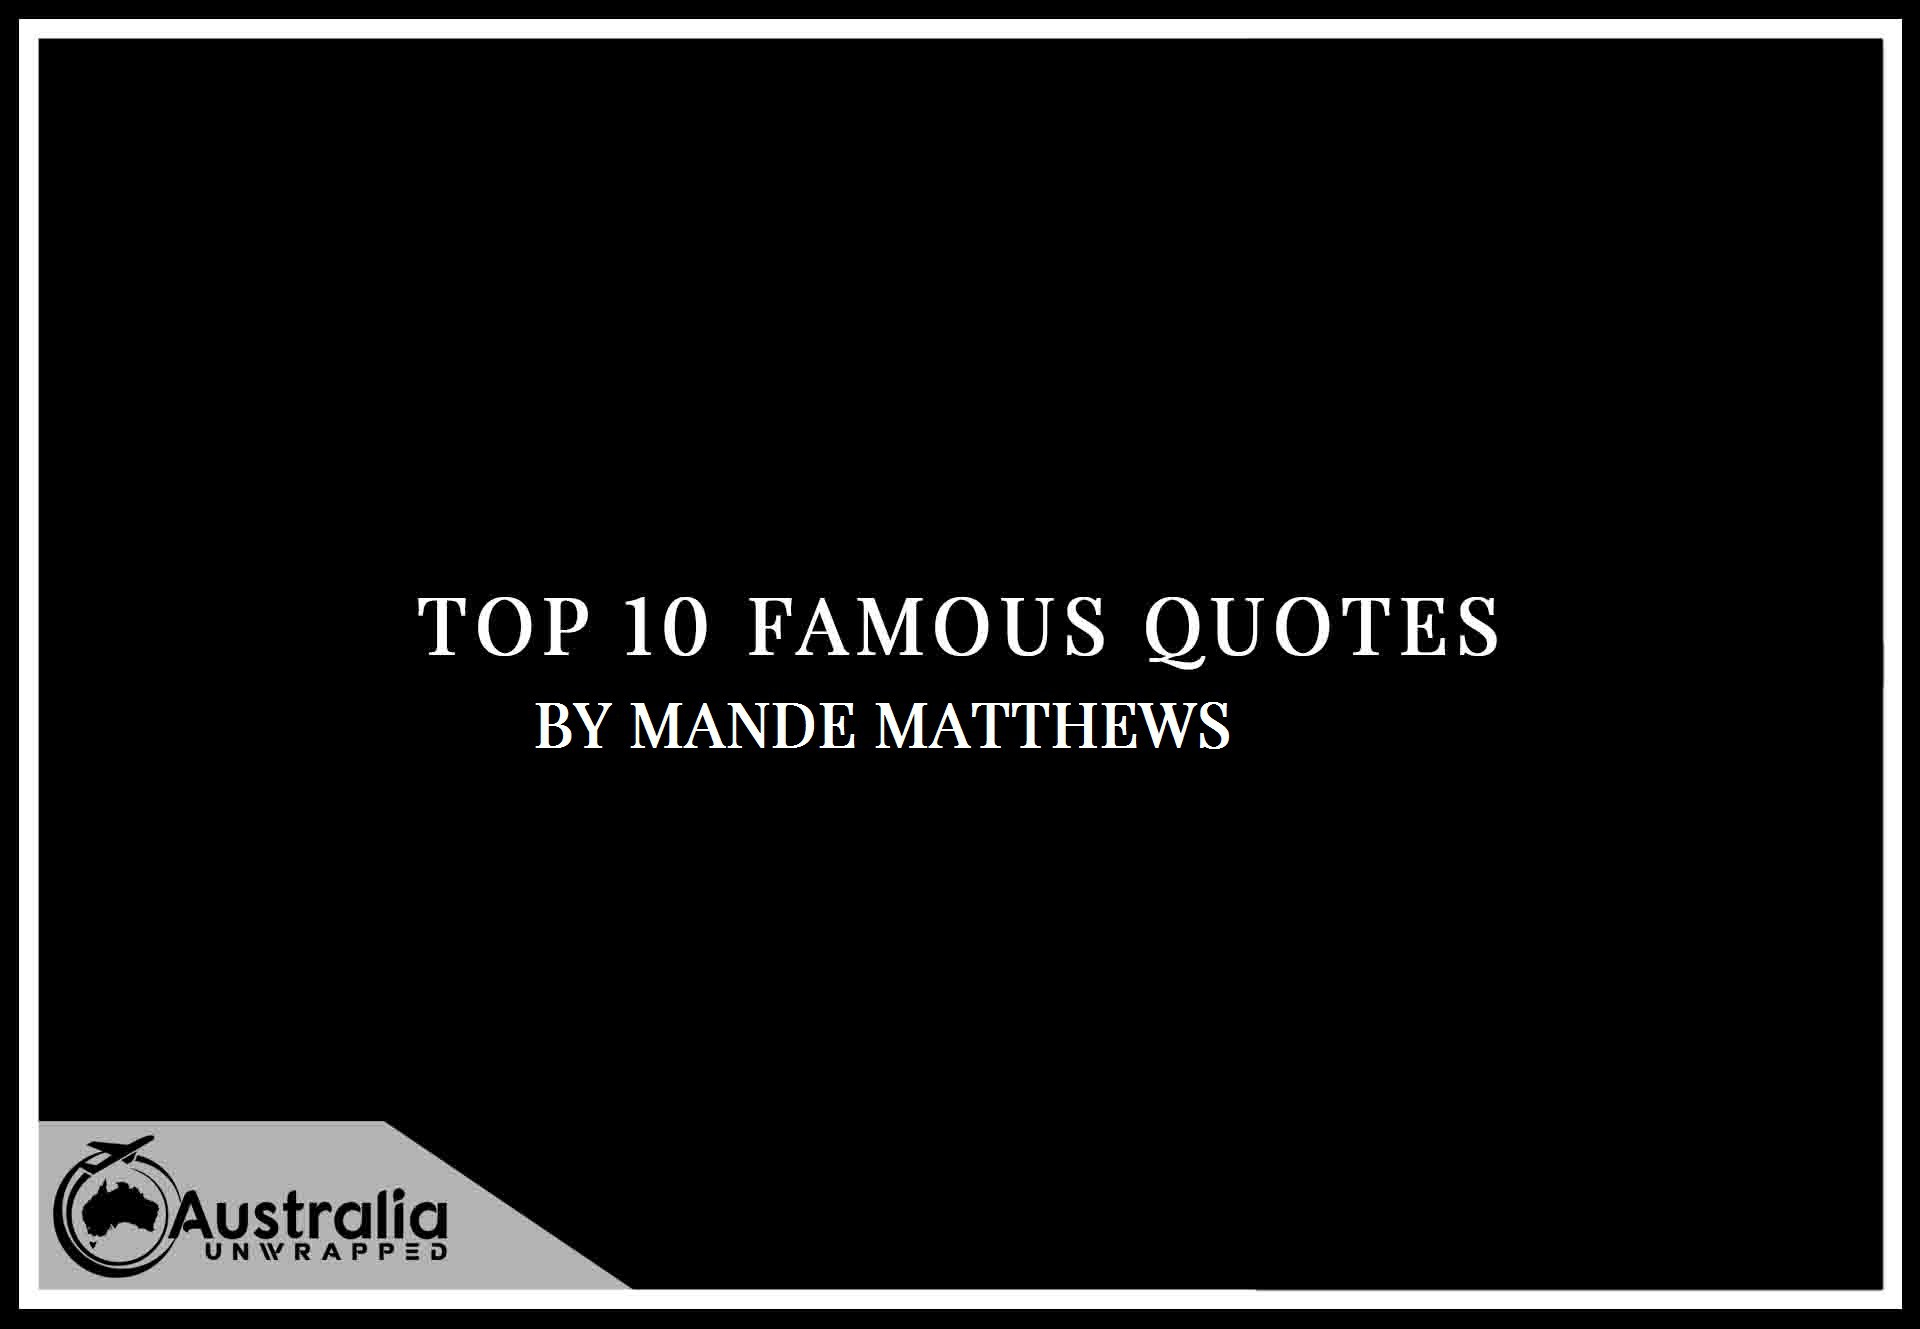 Mande Matthews's Top 10 Popular and Famous Quotes